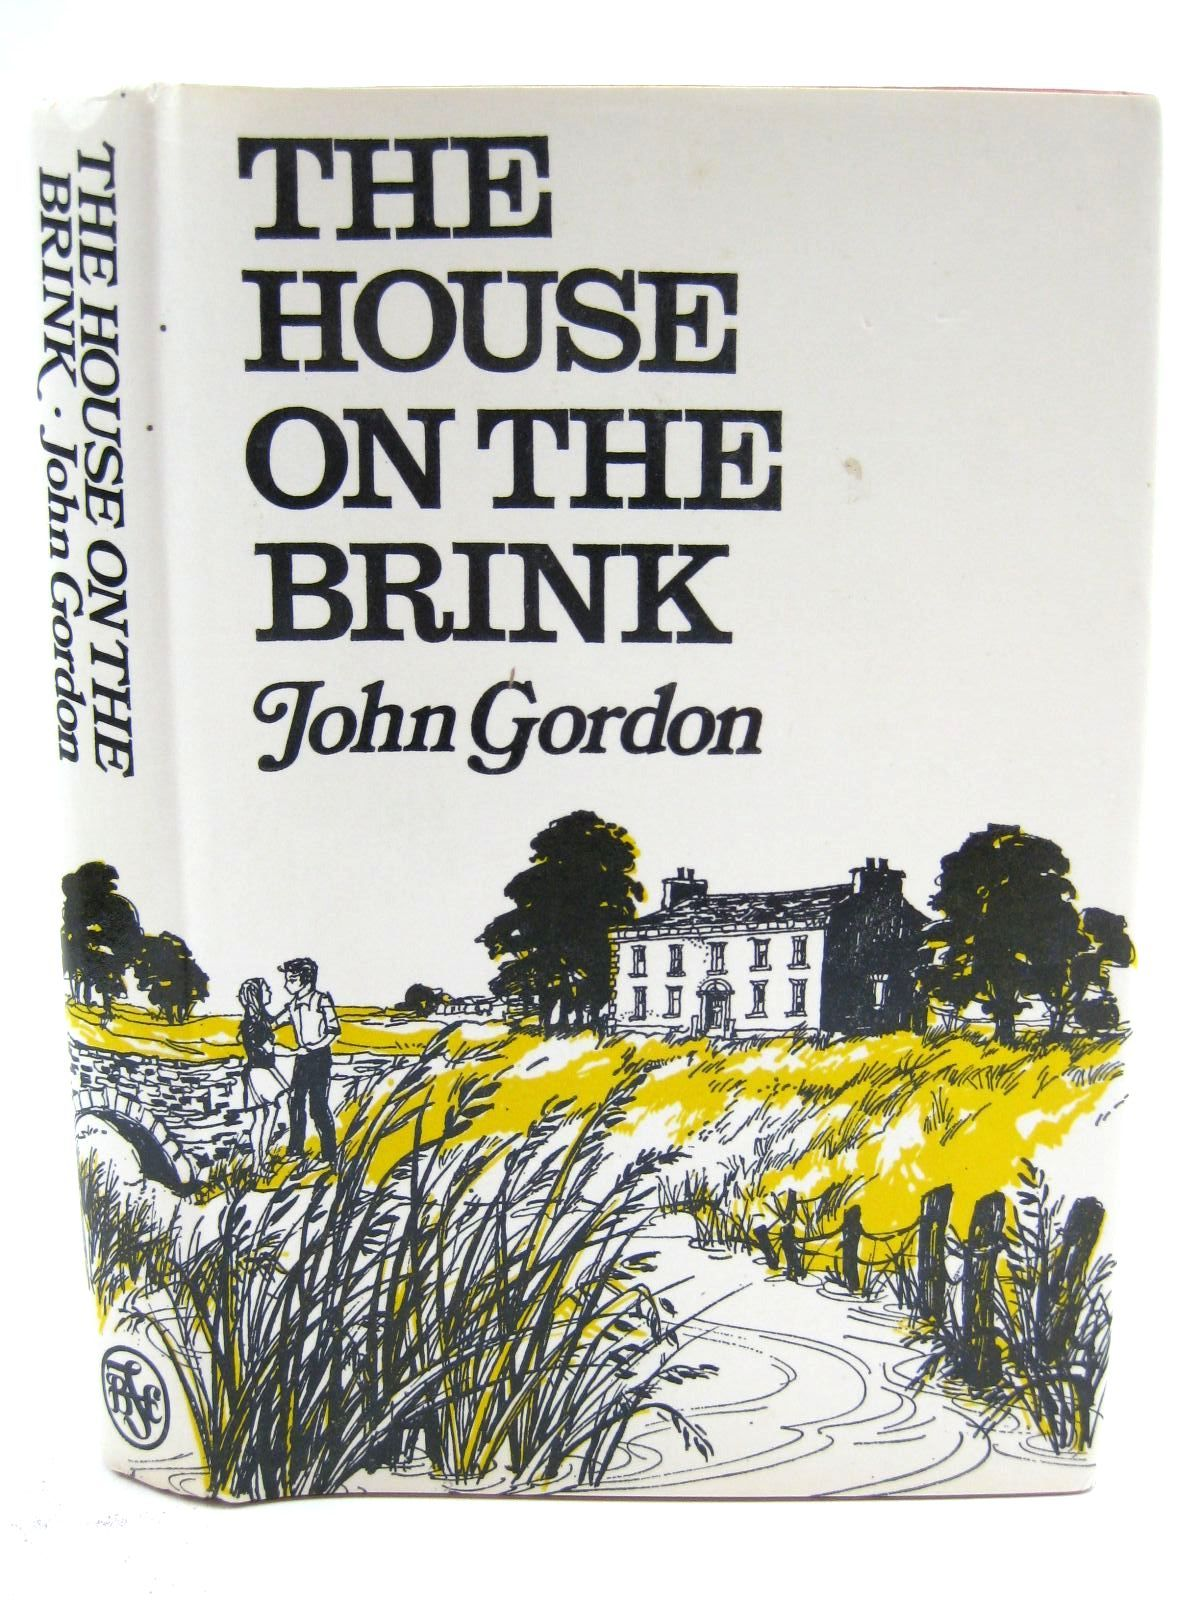 Photo of THE HOUSE ON THE BRINK written by Gordon, John published by The Children's Book Club (STOCK CODE: 1316677)  for sale by Stella & Rose's Books